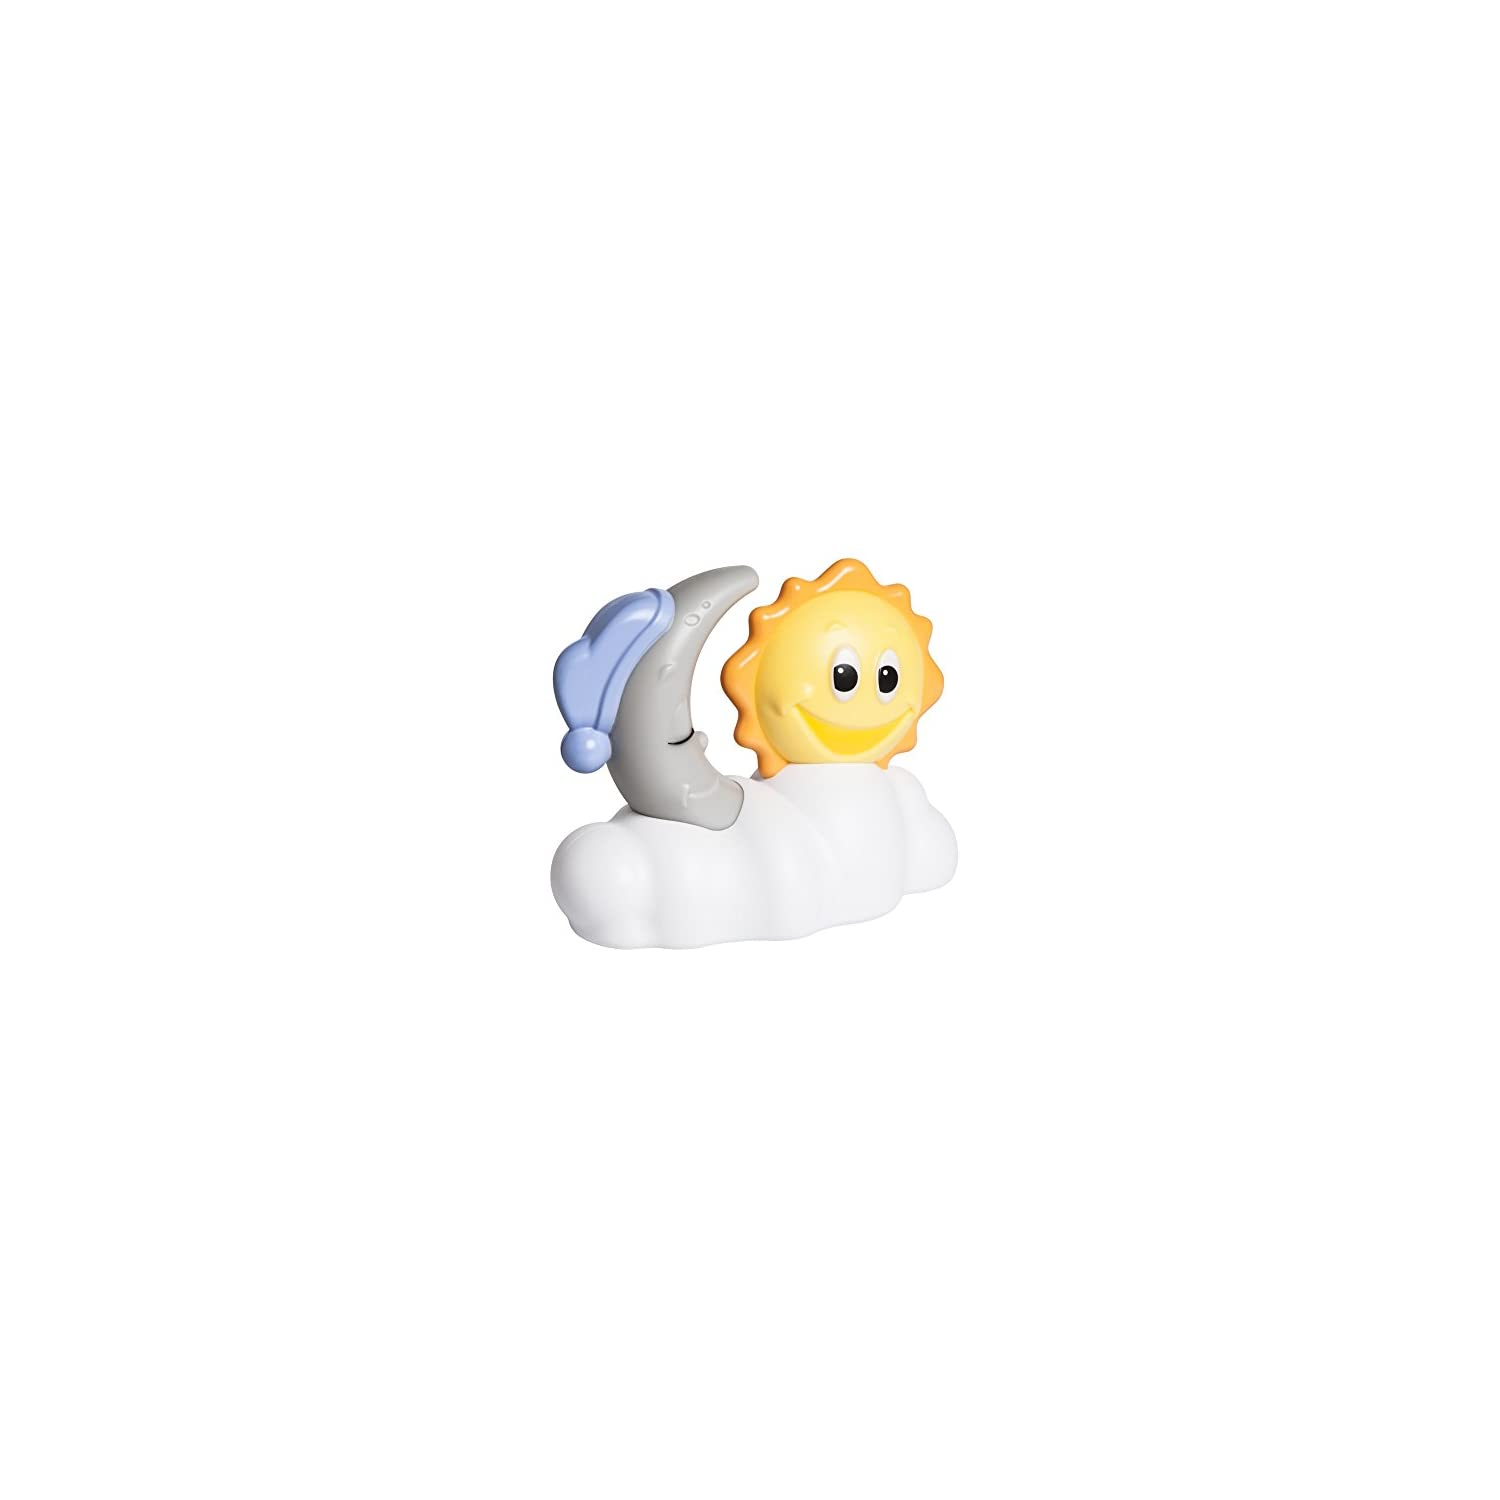 myBaby Time-To-Wake Nightlight, Sleep Trainer & Nightlight, Plays 4 Soothing Sounds, Sound and Light Activate for Wake Up Time, AC Adapter or 4AAA Battery Operated, MYB-N150